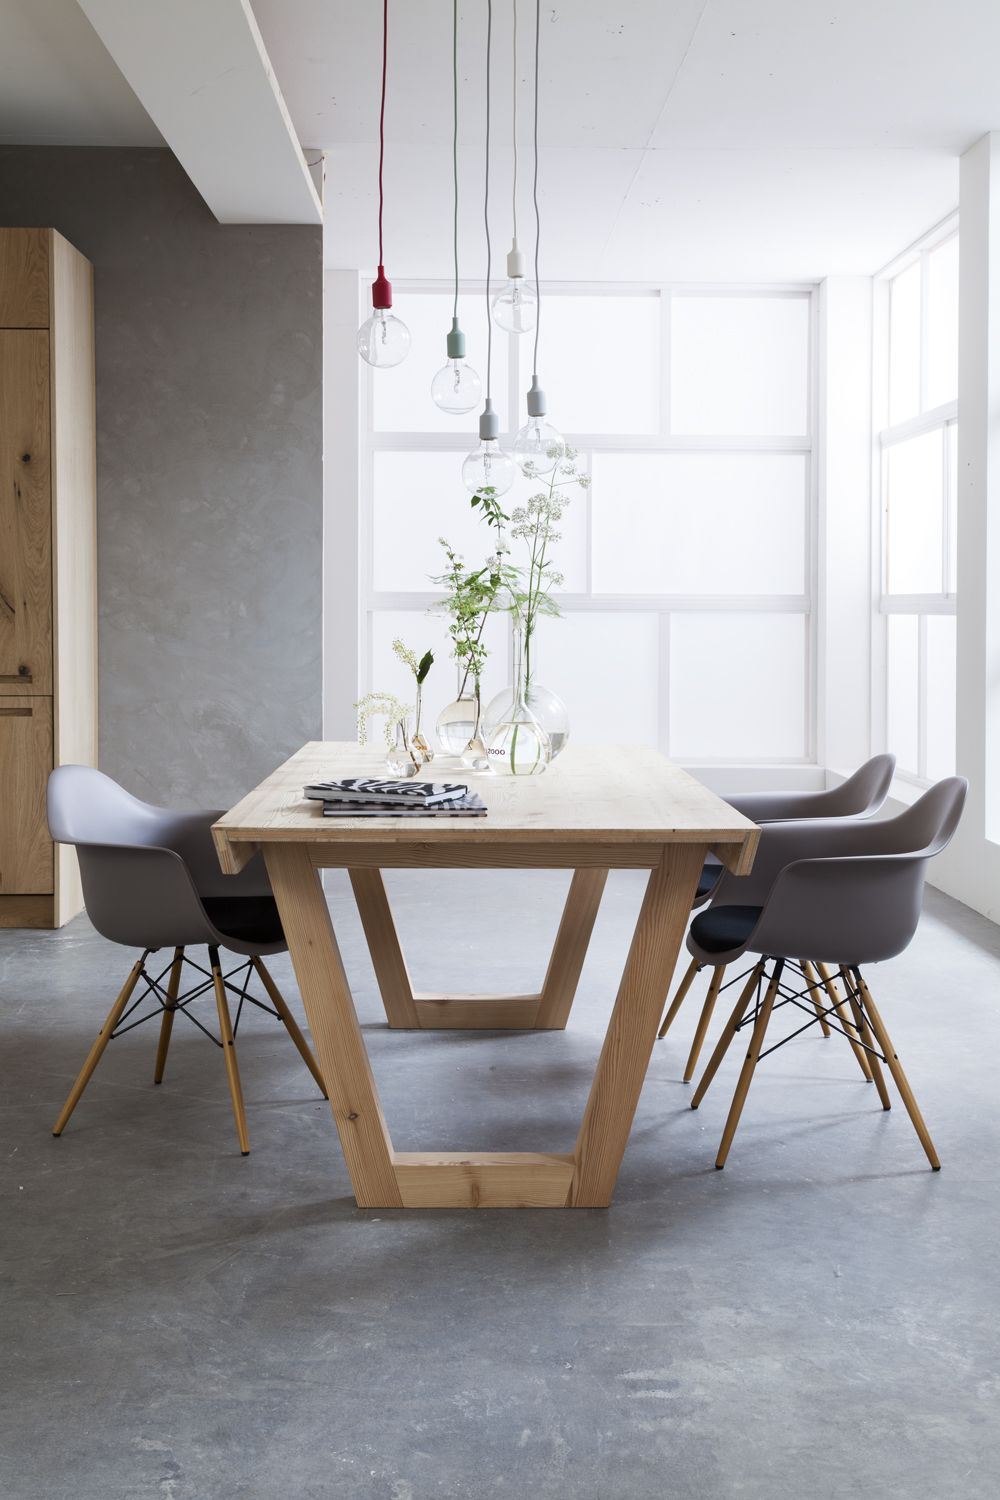 urbnite | kaupo | Pinterest | Tables, Interiors and Room